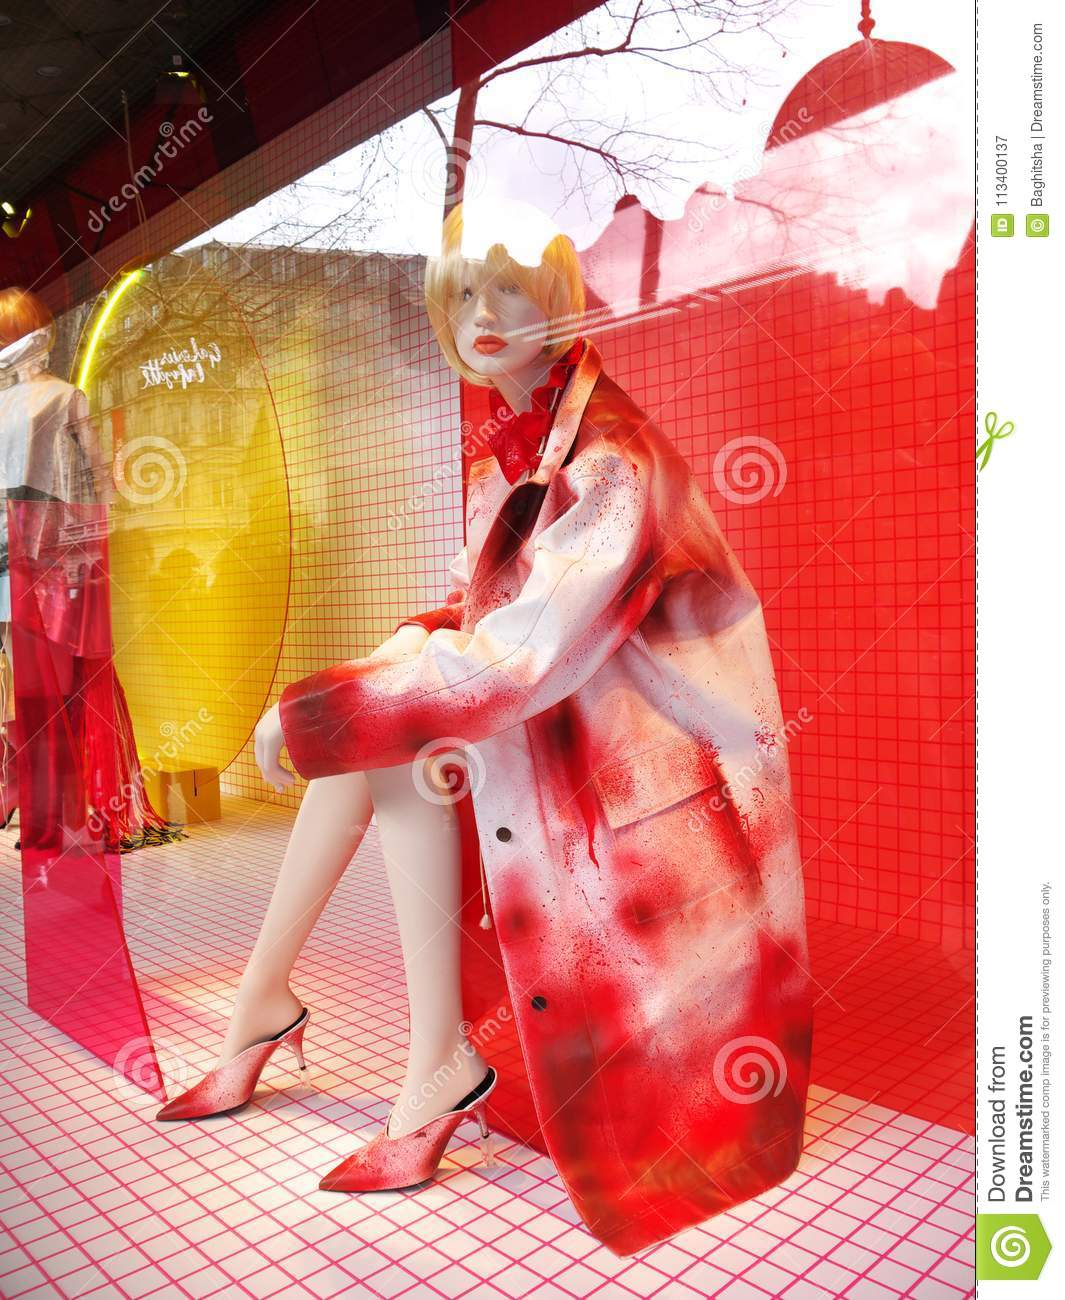 fa766904c583 A red dabbled Calvin Klein raincoat and high heel shoes on a mannequin in a  showcase of the Galeries Lafayette department store. Trend 2018.